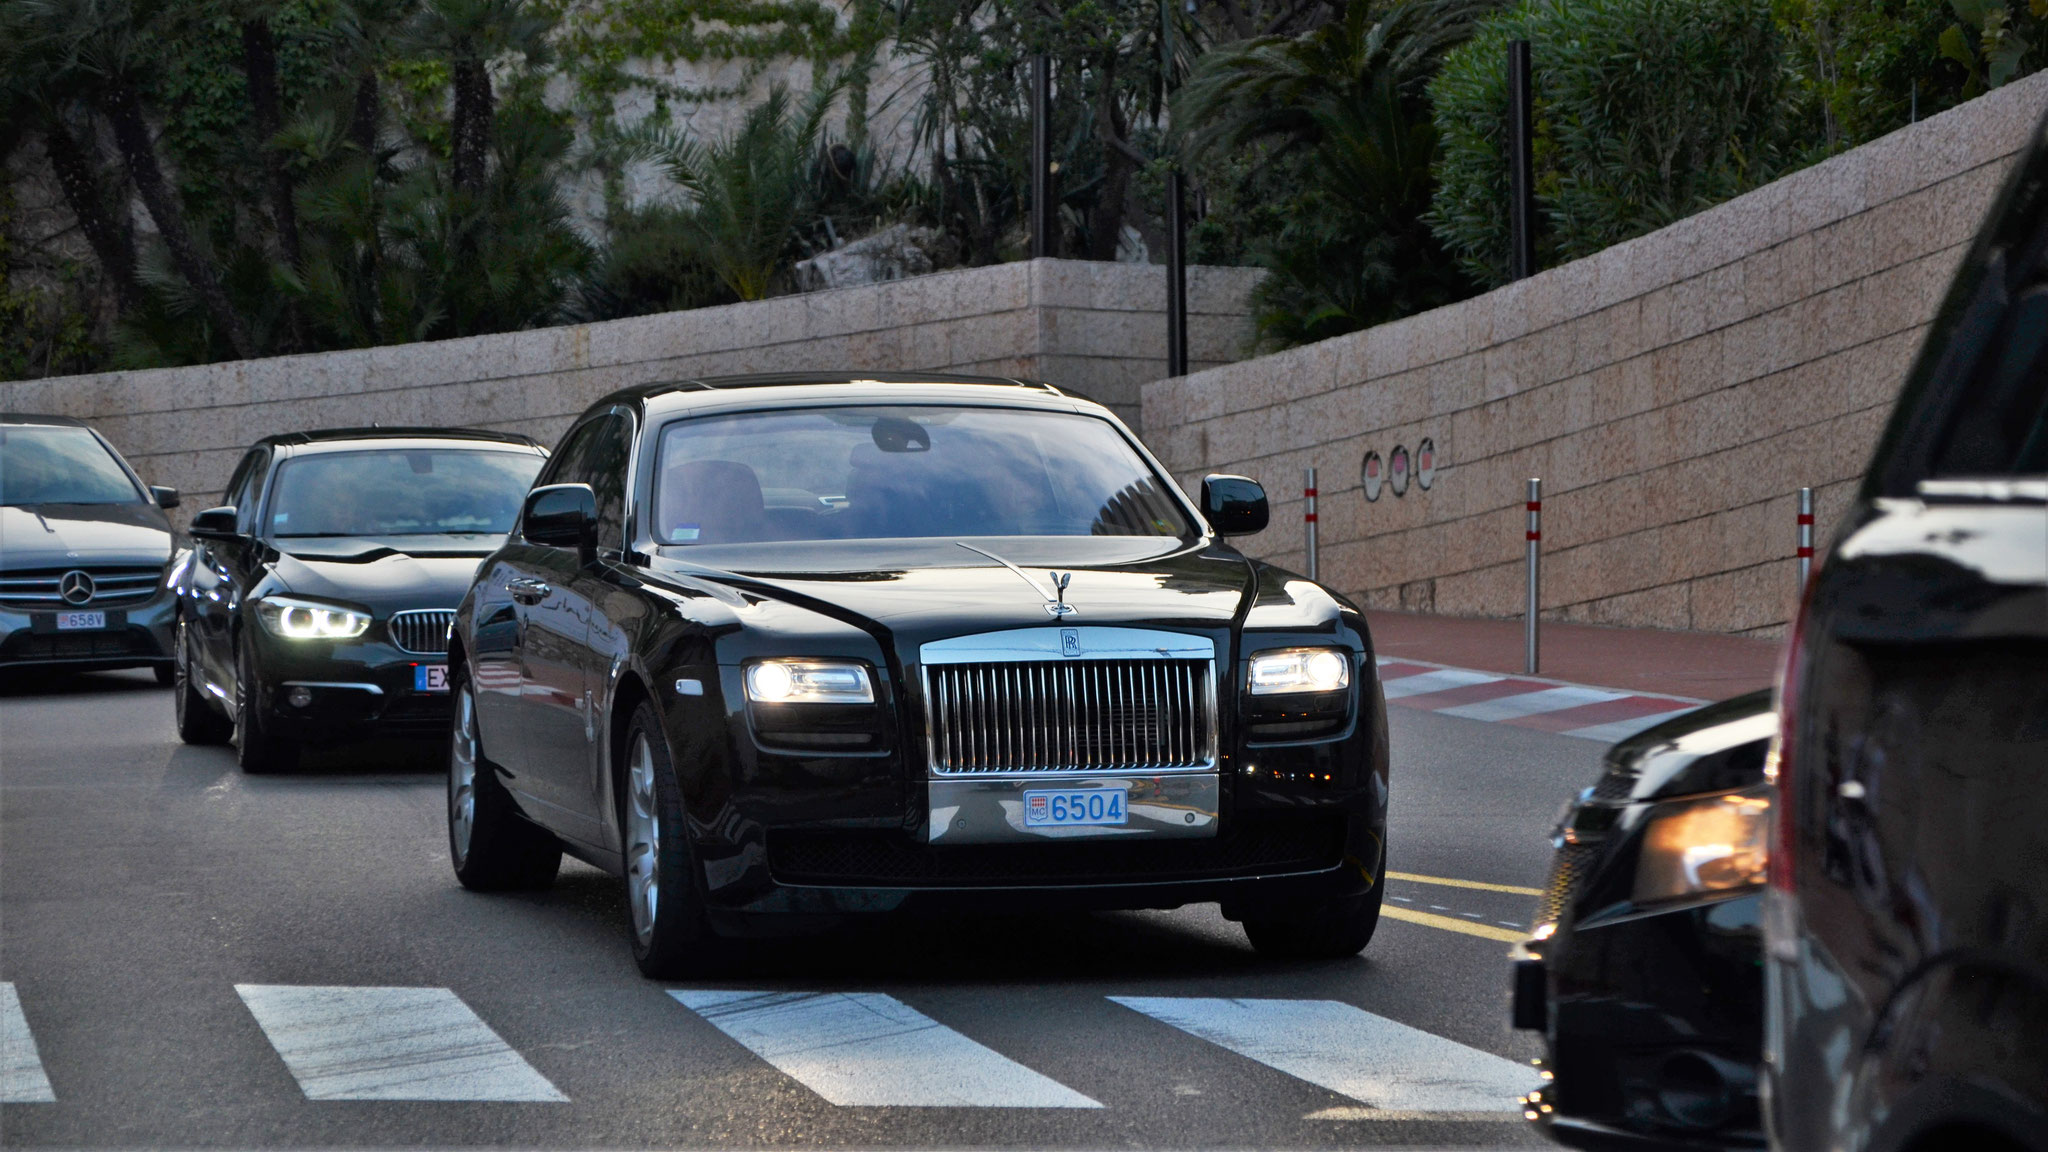 Rolls Royce Ghost - 6504 (MC)